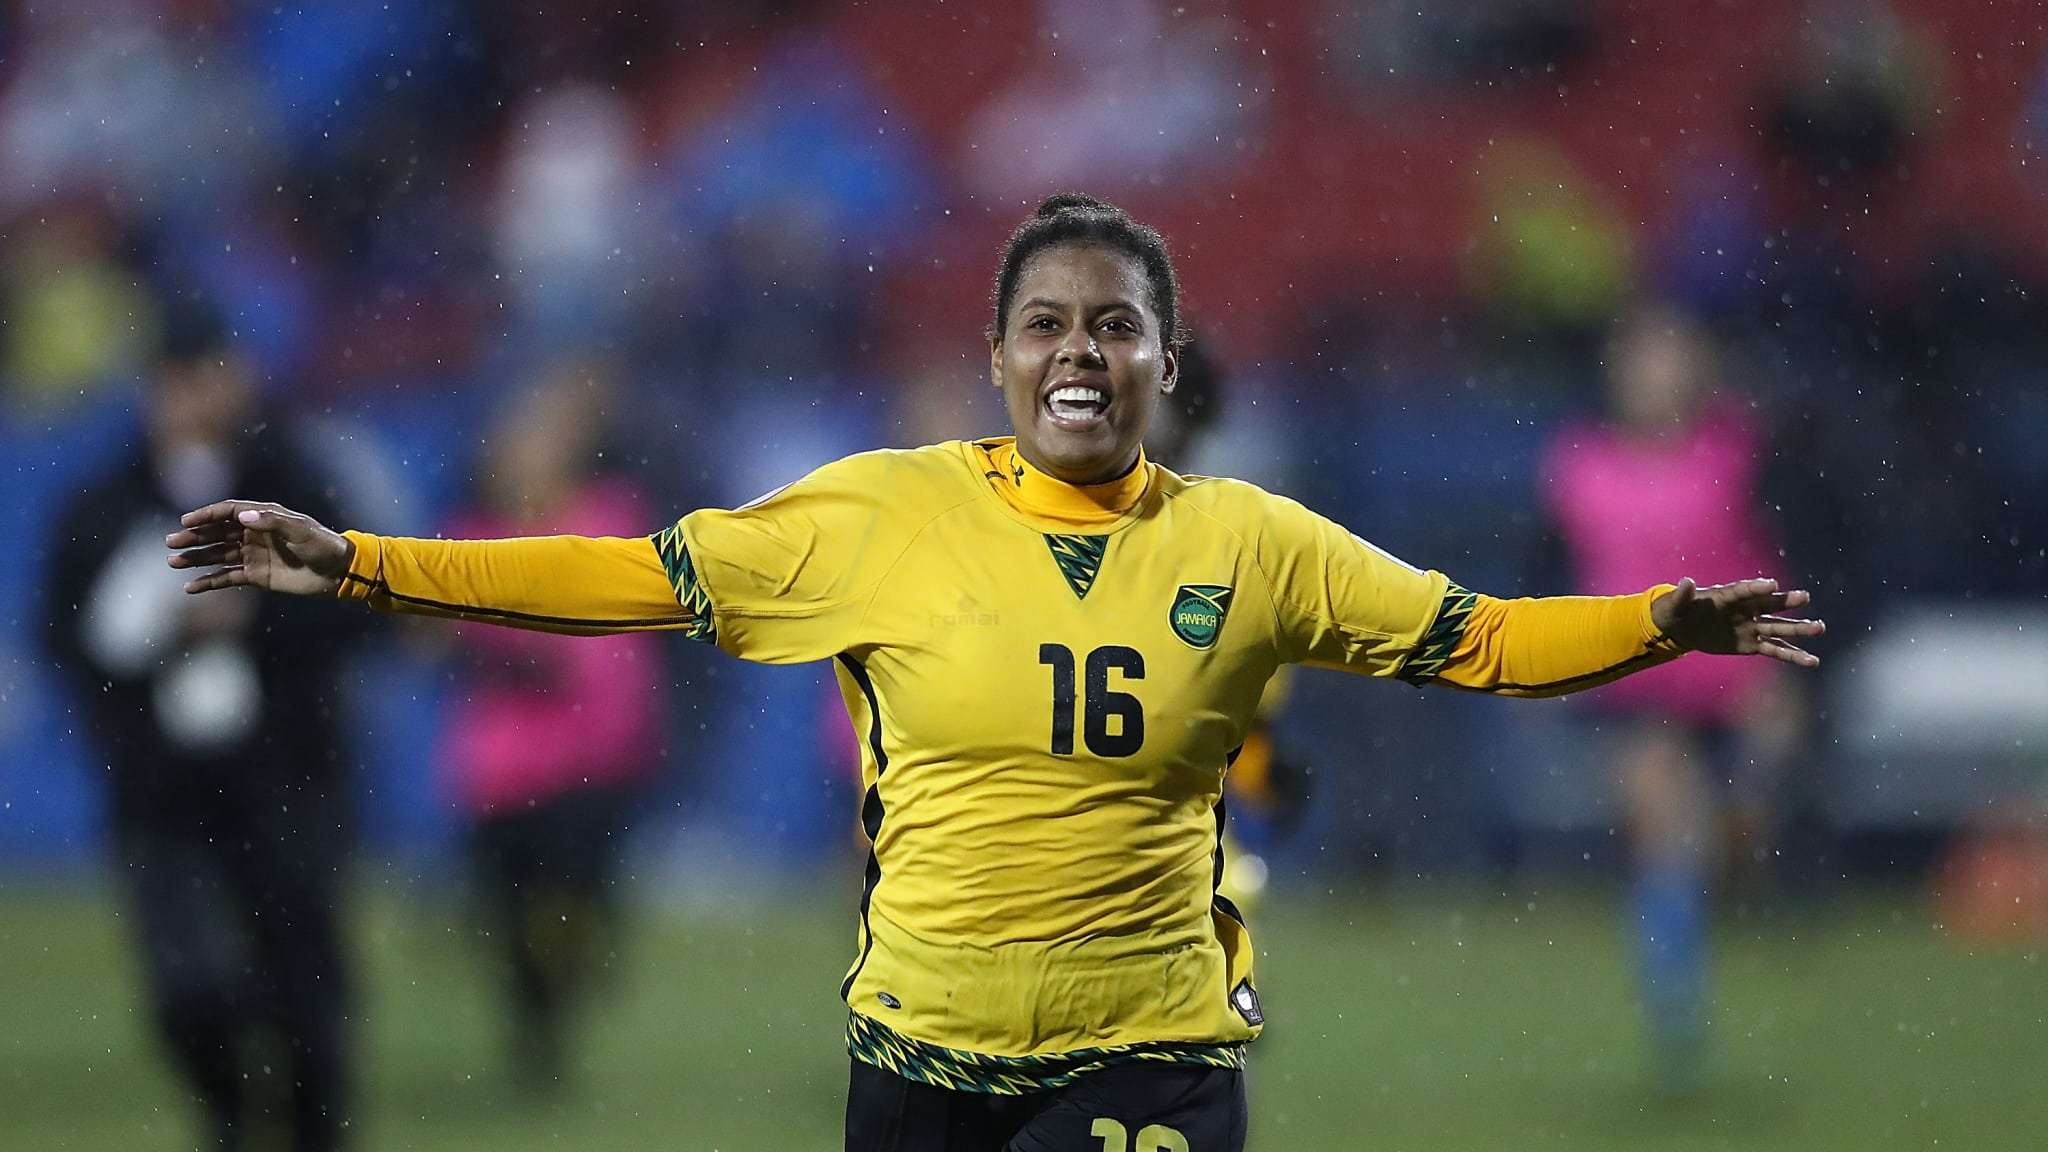 France Bound! Reggae Girlz Secure Sport at 2019 FIFA World Cup